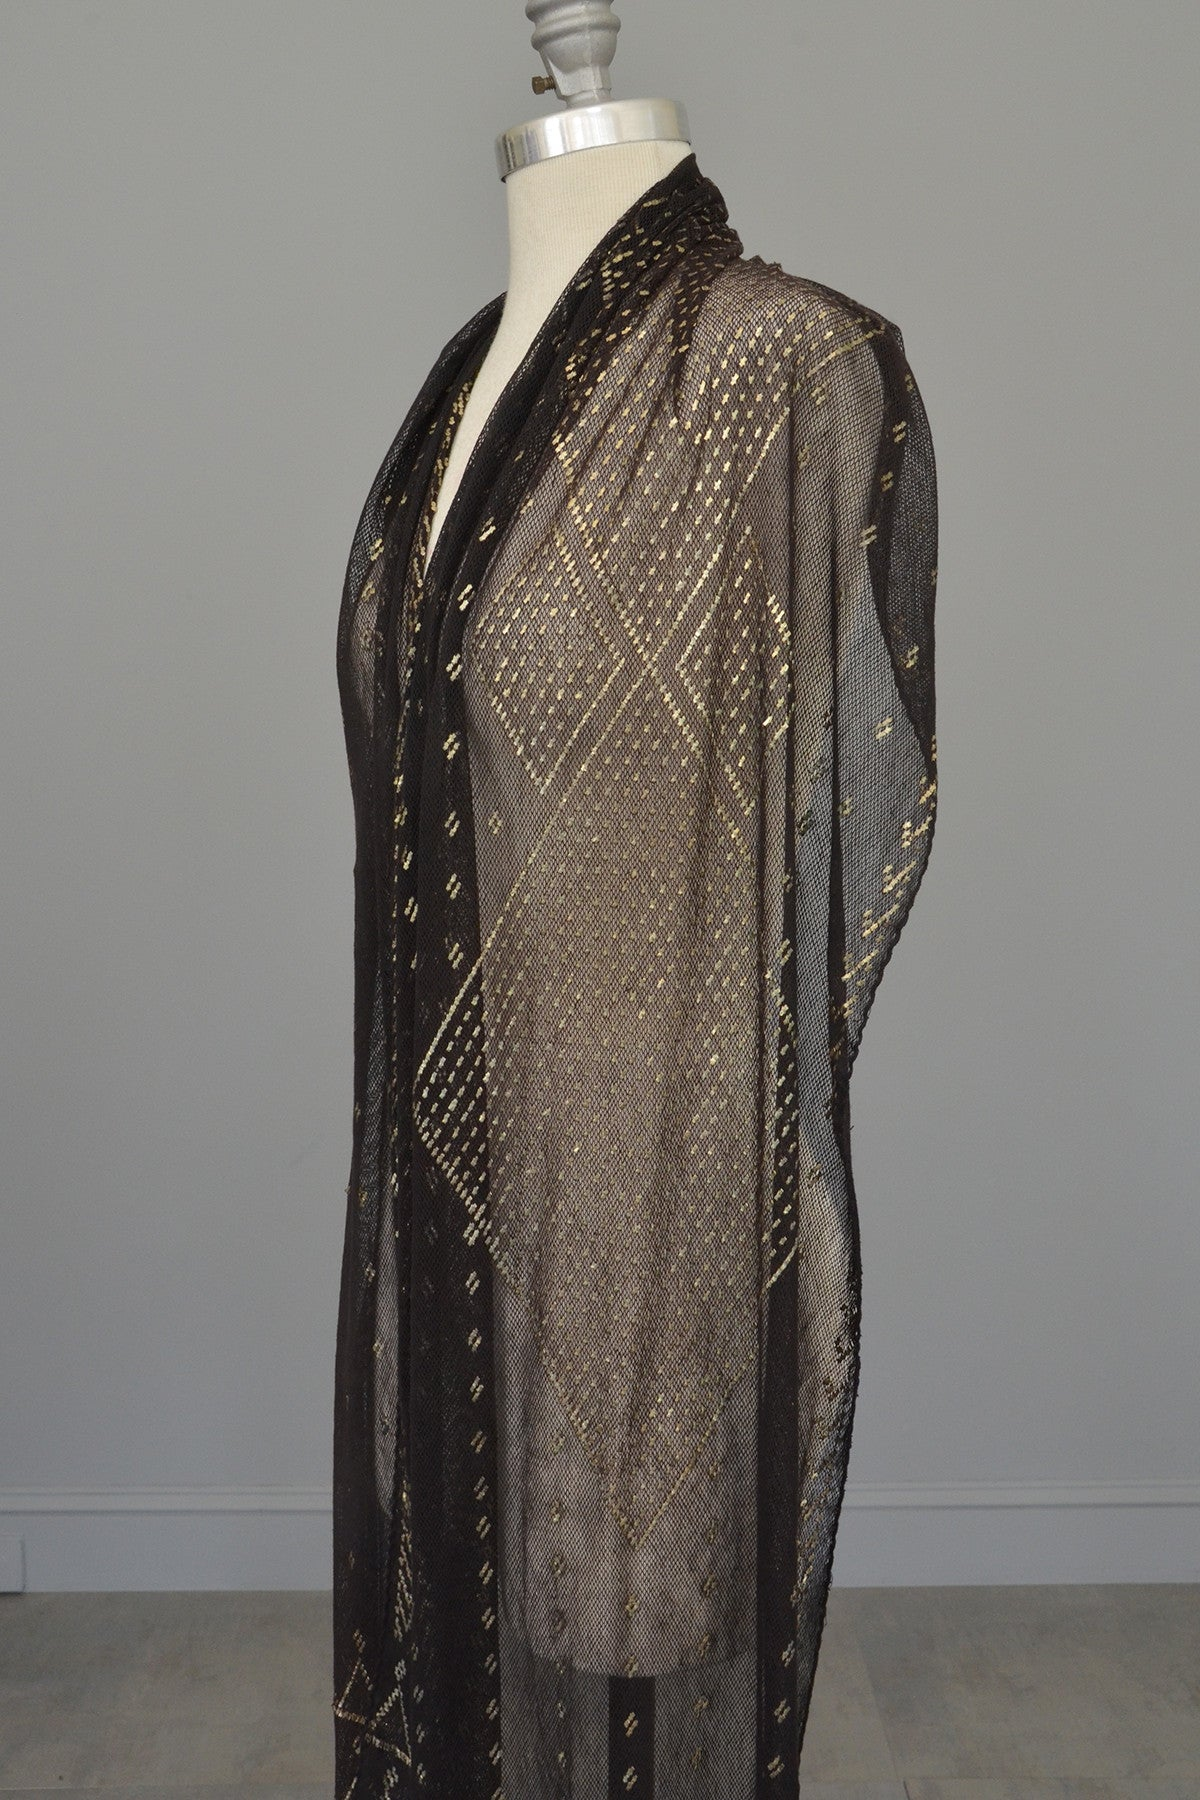 1920s Geometric Black w Silver Nickel Metal Egyptian Assiut Assuit Art Deco Shawl